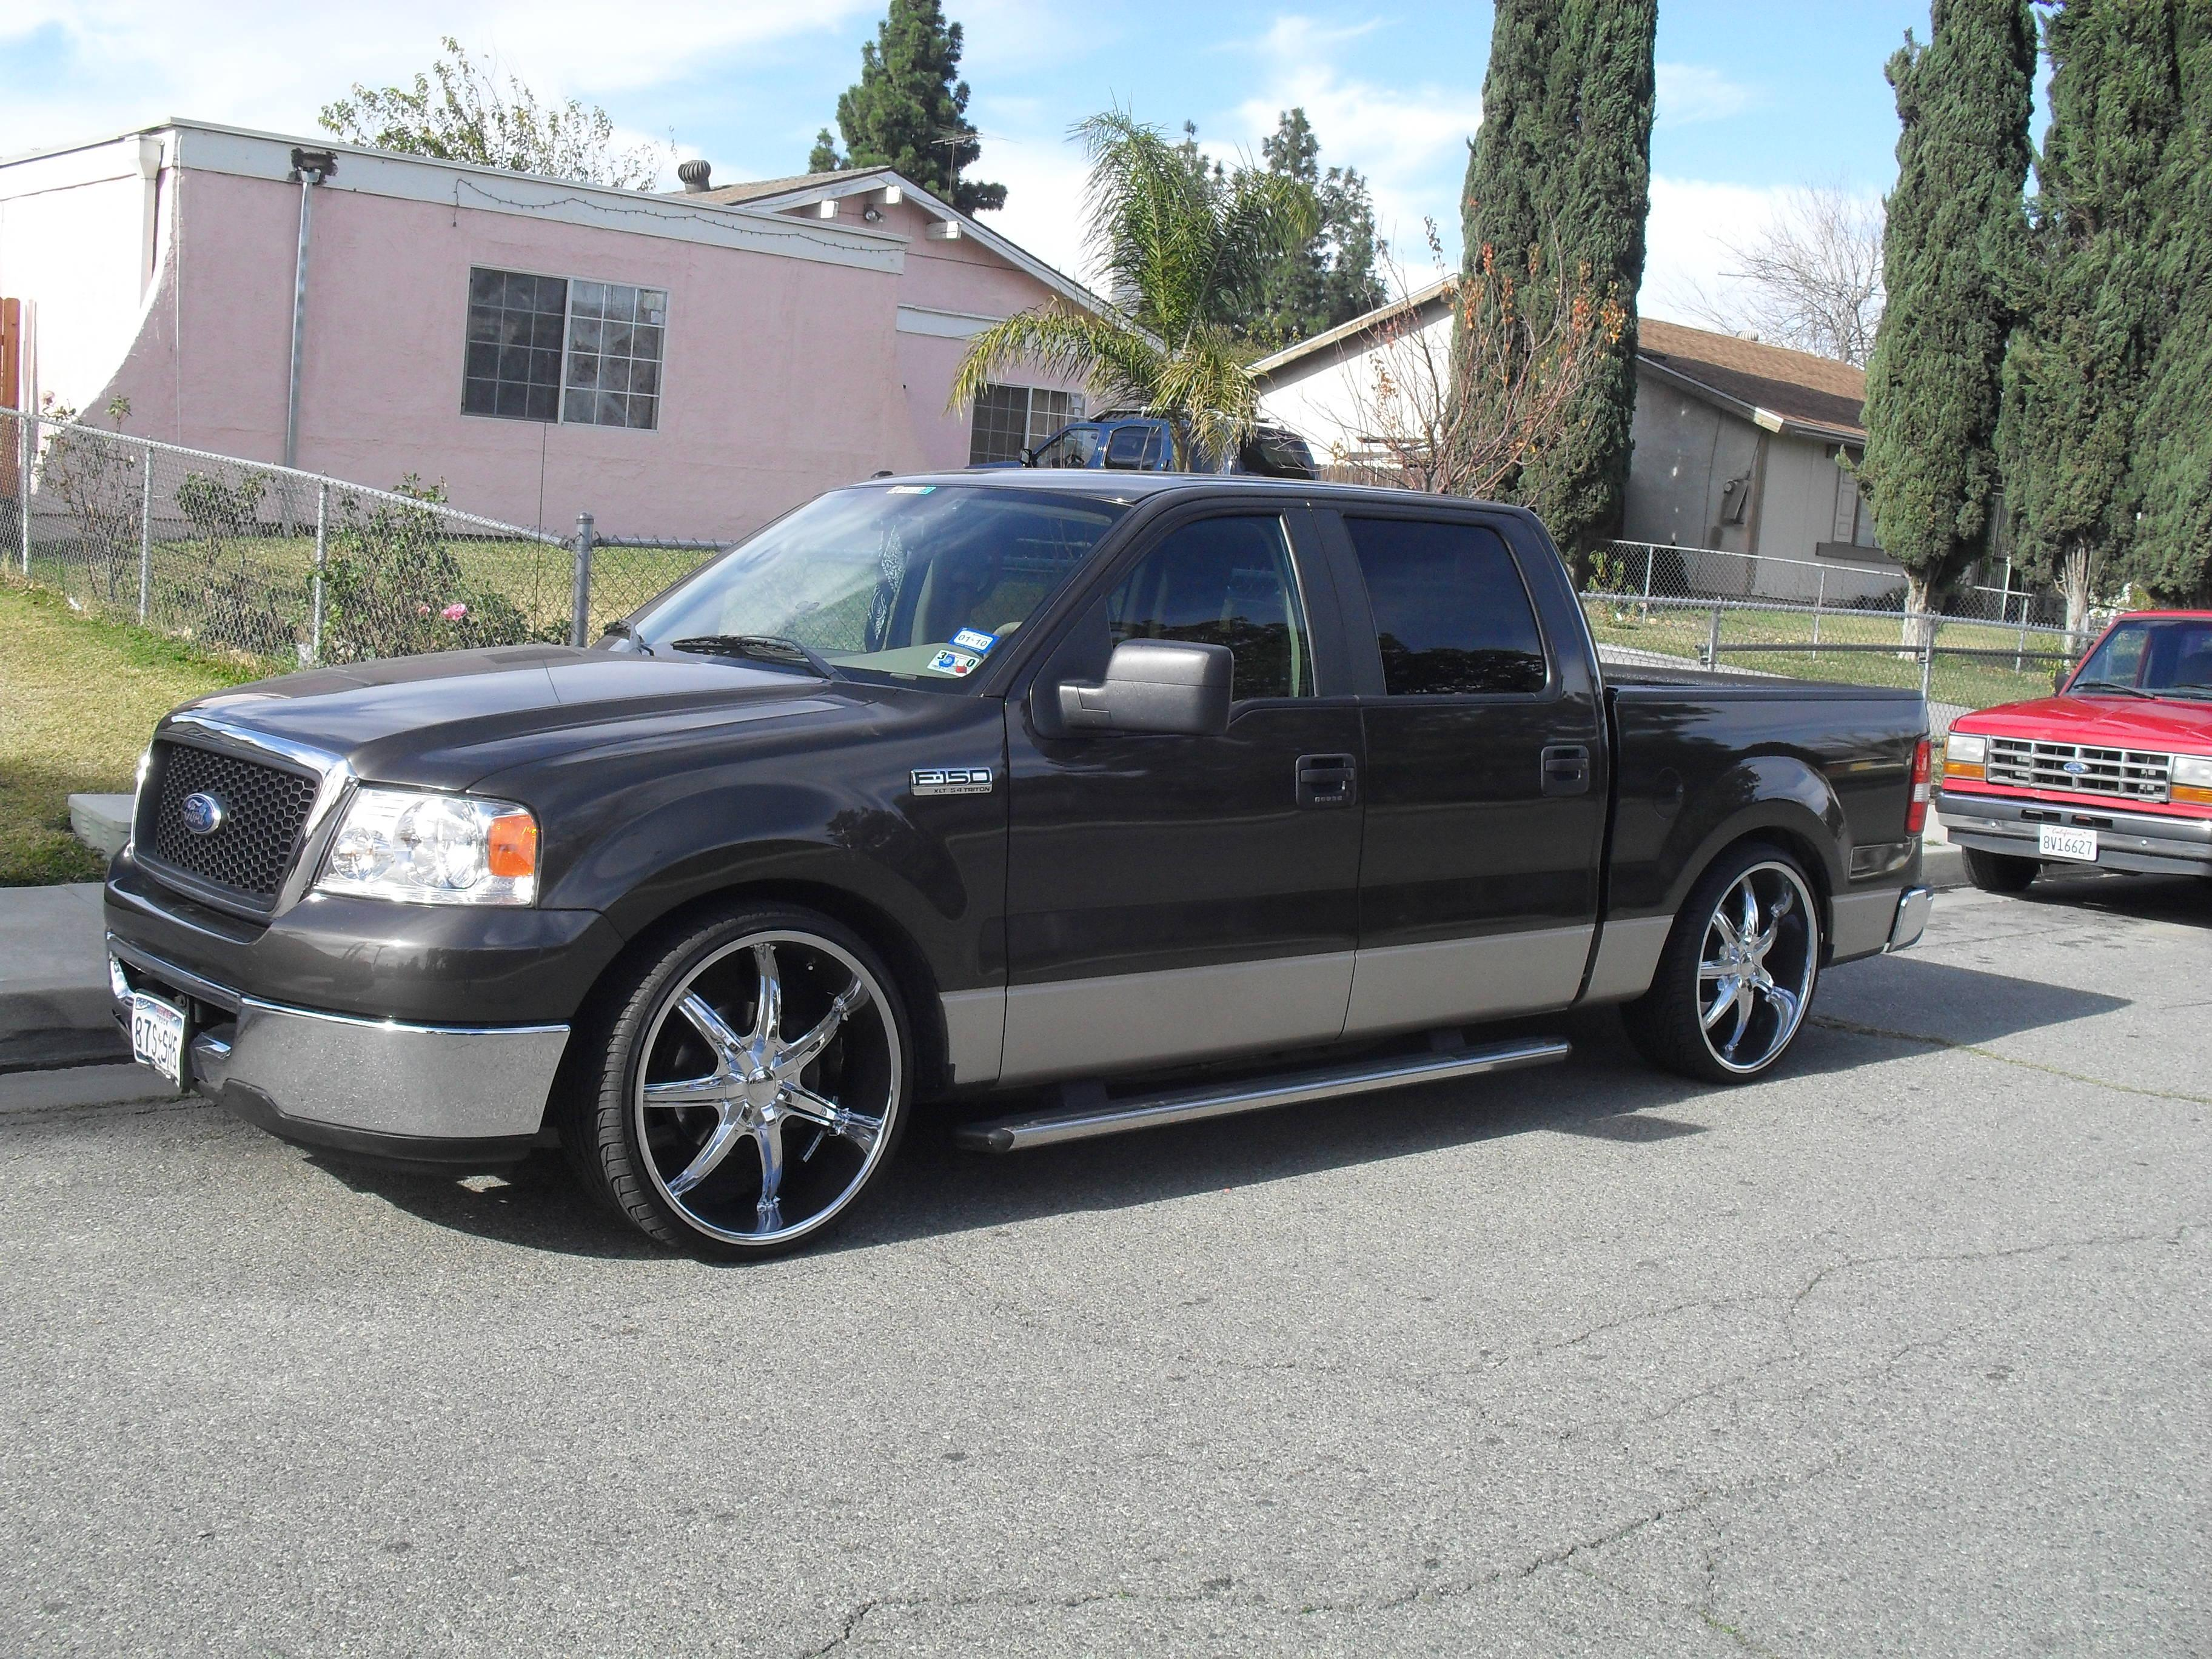 F150 Custom Parts >> Tuning Ford F-150 Crew Cab 2006 online, accessories and ...